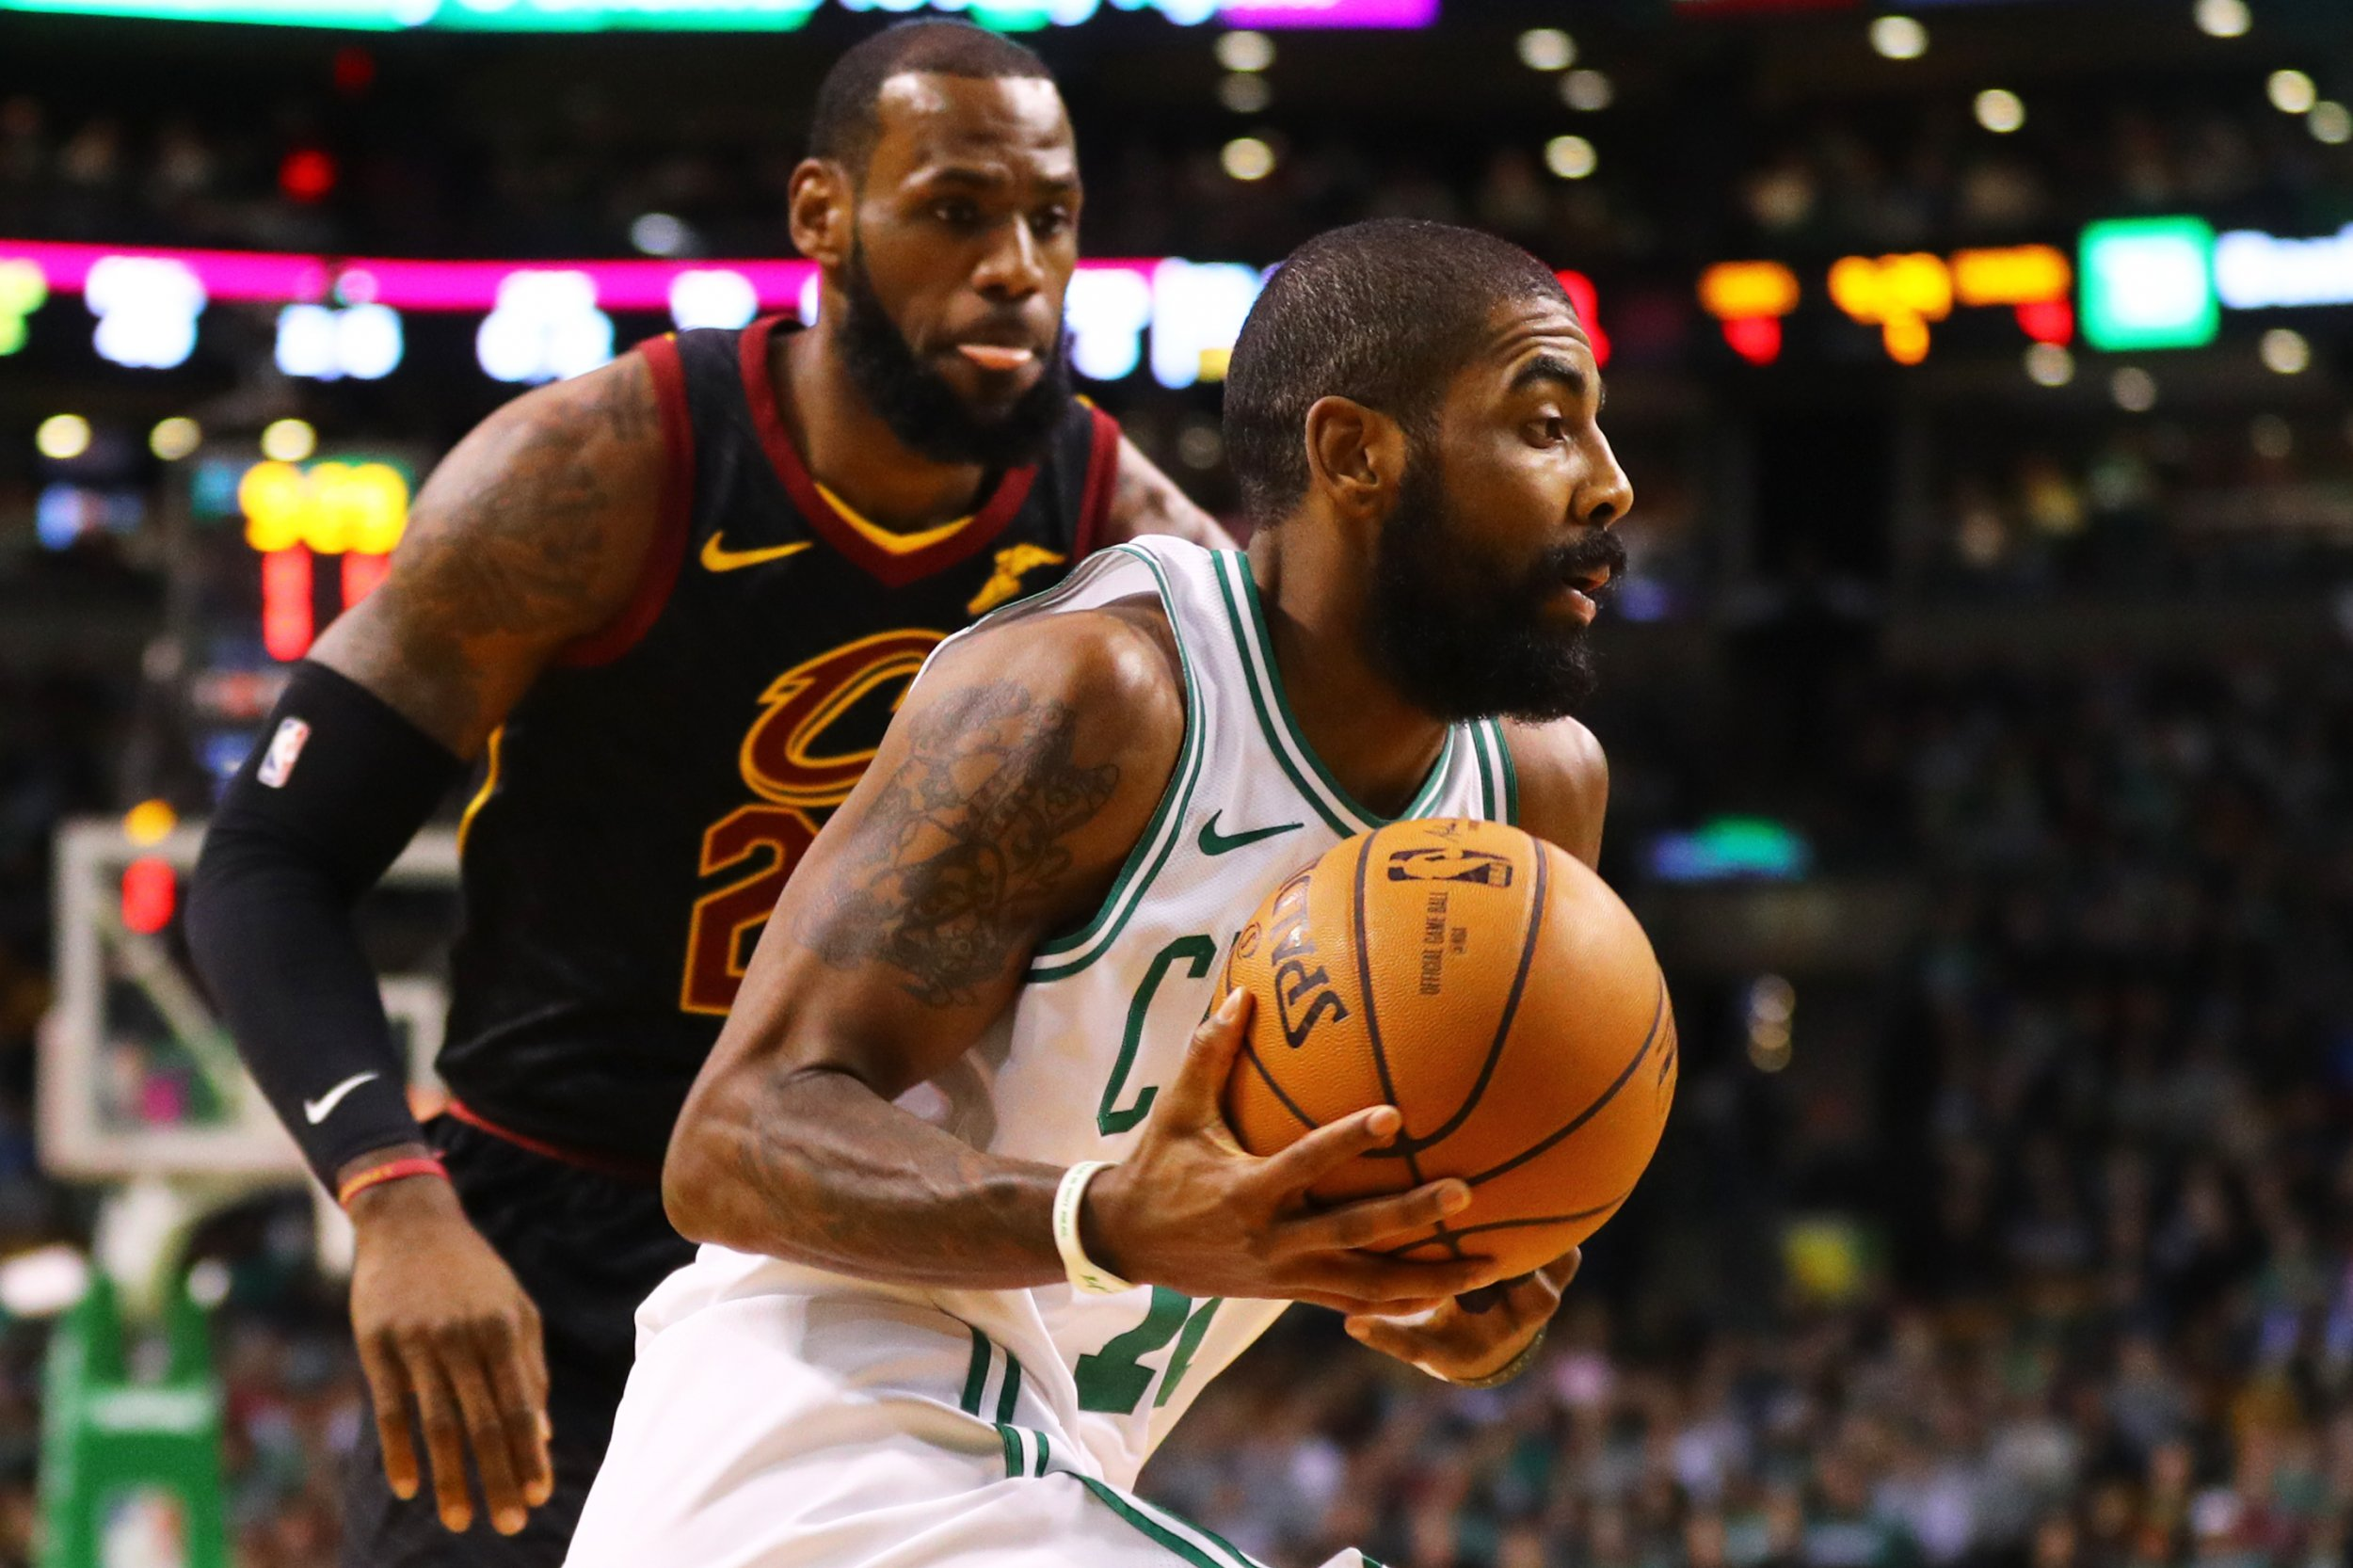 Kyrie Irving of the Boston Celtics drives against LeBron James of the Cavaliers at TD Garden, Boston, January 3.